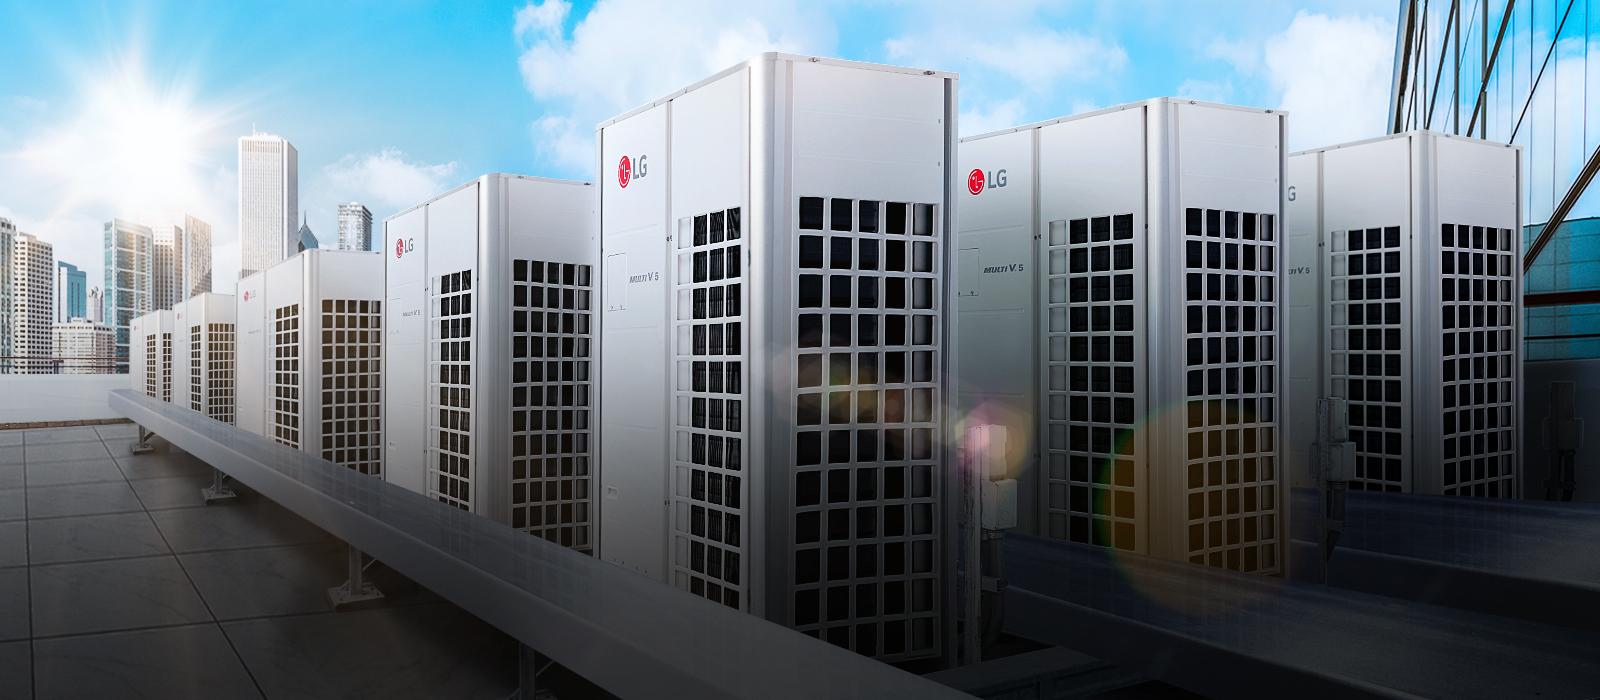 Top HVAC Trends for 2019 | On Air - LG HVAC STORY